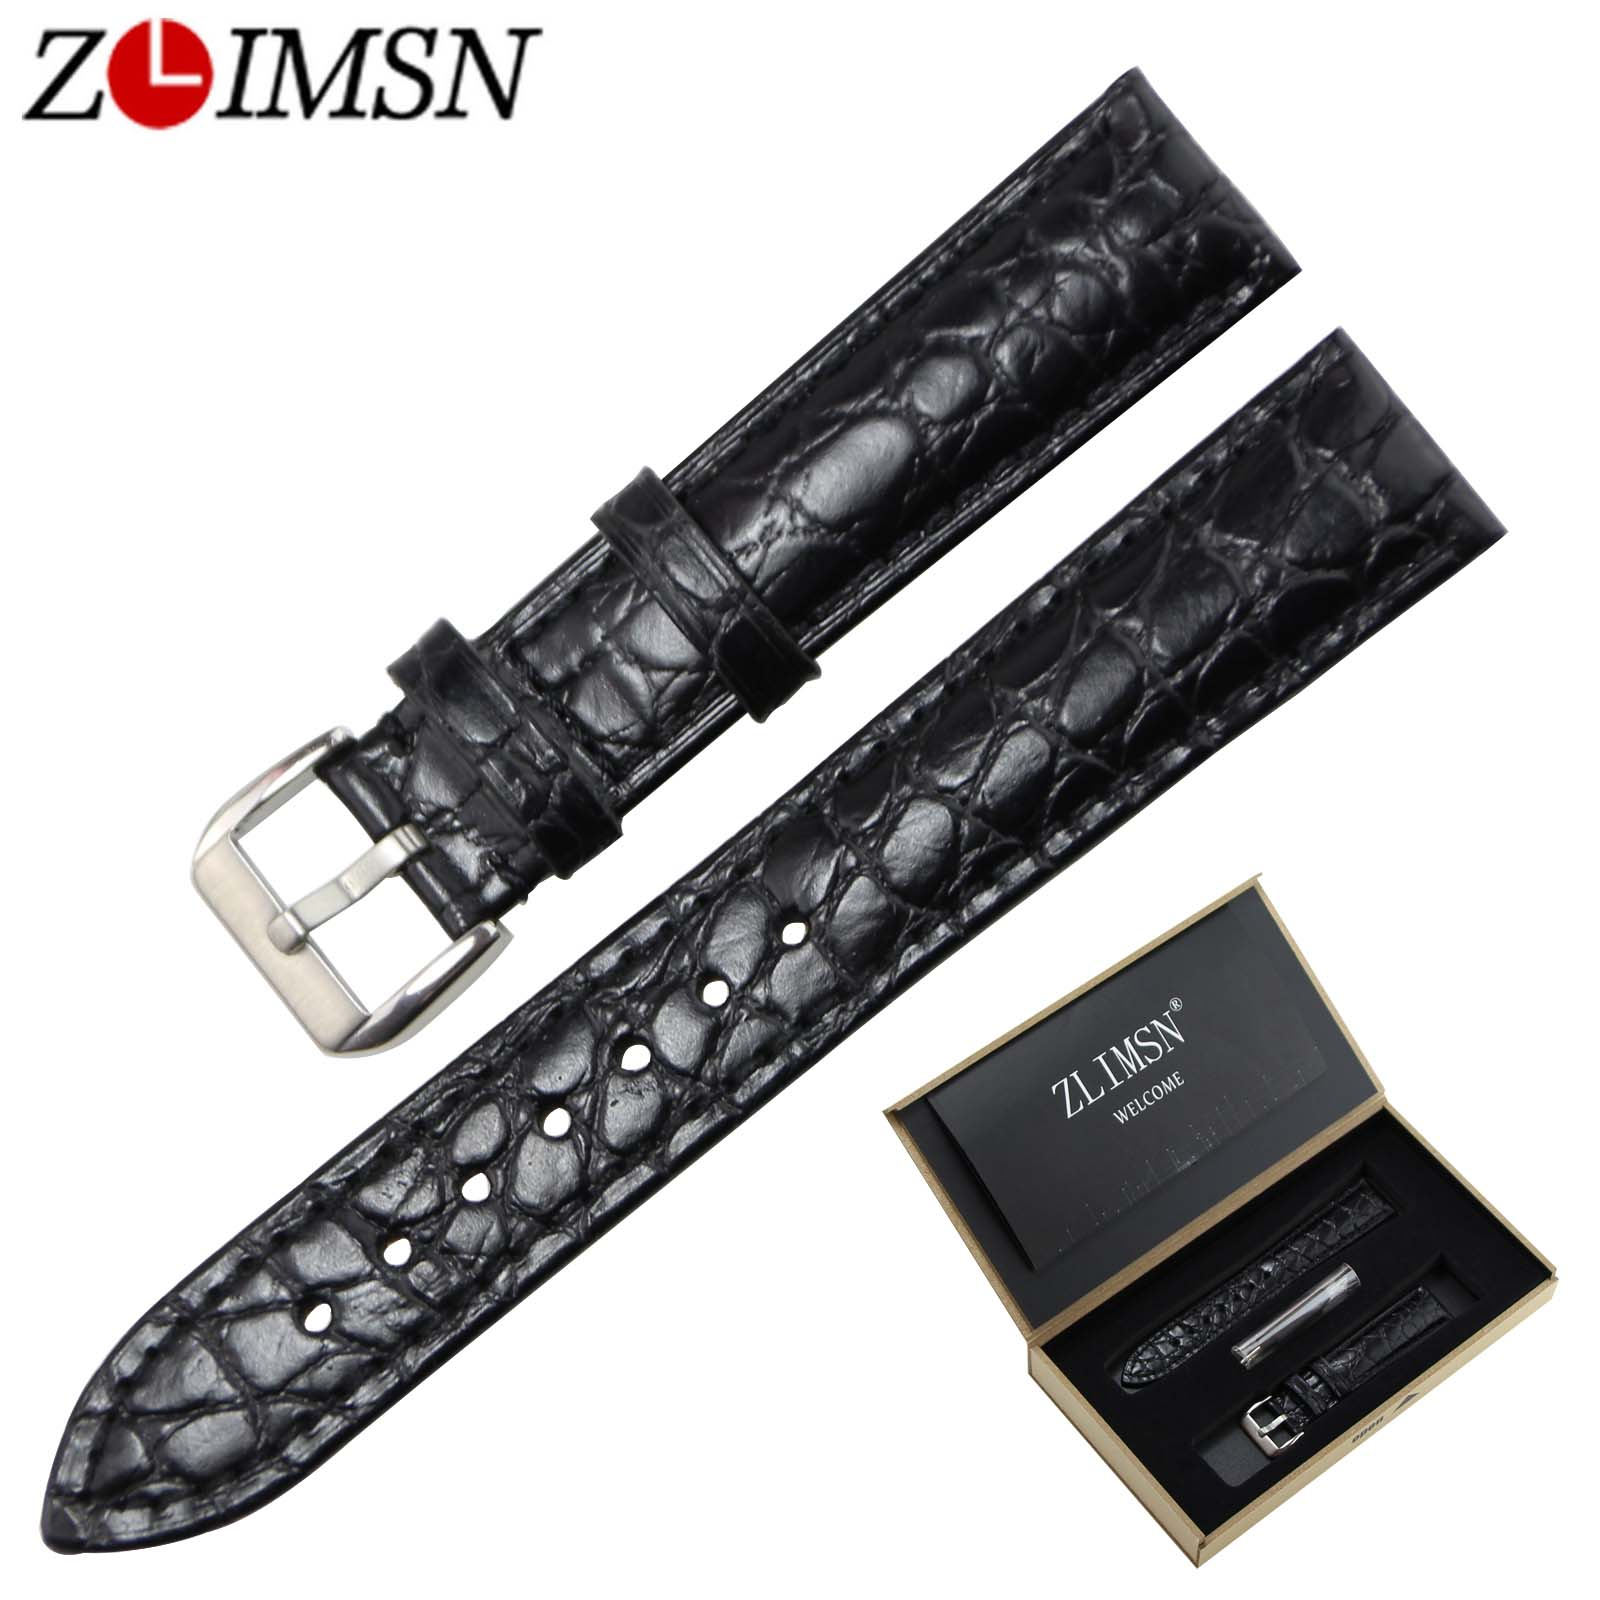 ZLIMSN Top Grade Crocodile Grain Genuine Leather Watchband Strap 18 20mm Brown Black Stainless Steel Buckle Wristwatch Belt top grade vintage calfskin genuine leather watch strap 20mm army green tan dark blue green maroon black watchband with buckle